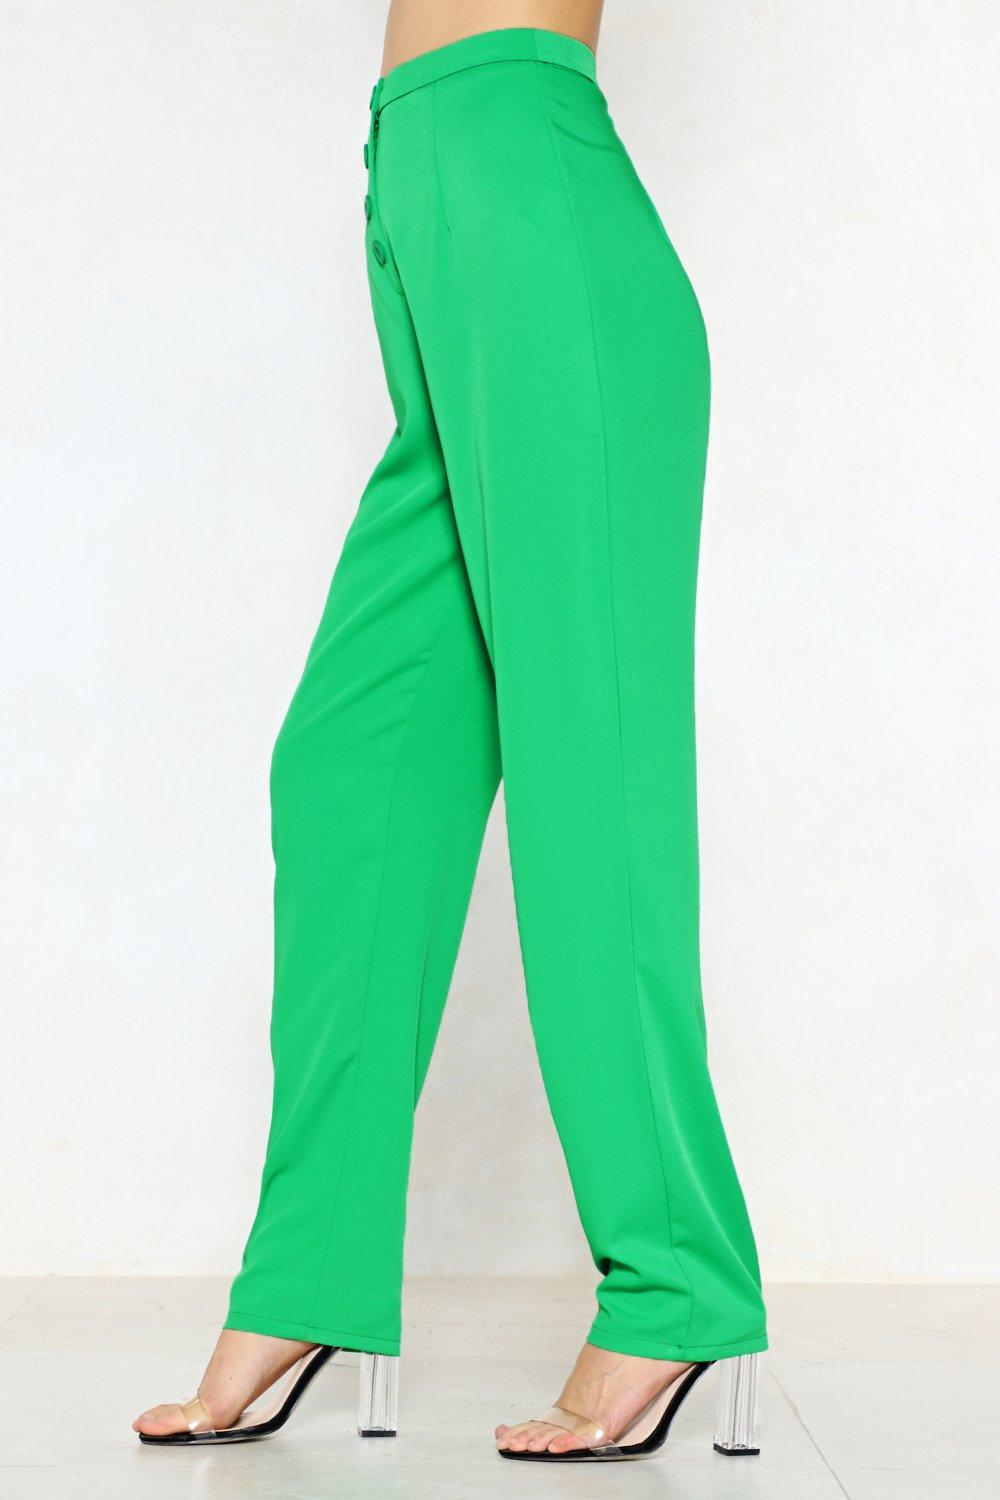 691d7ab73 Womens Green Button Up to No Good High-Waisted Pants